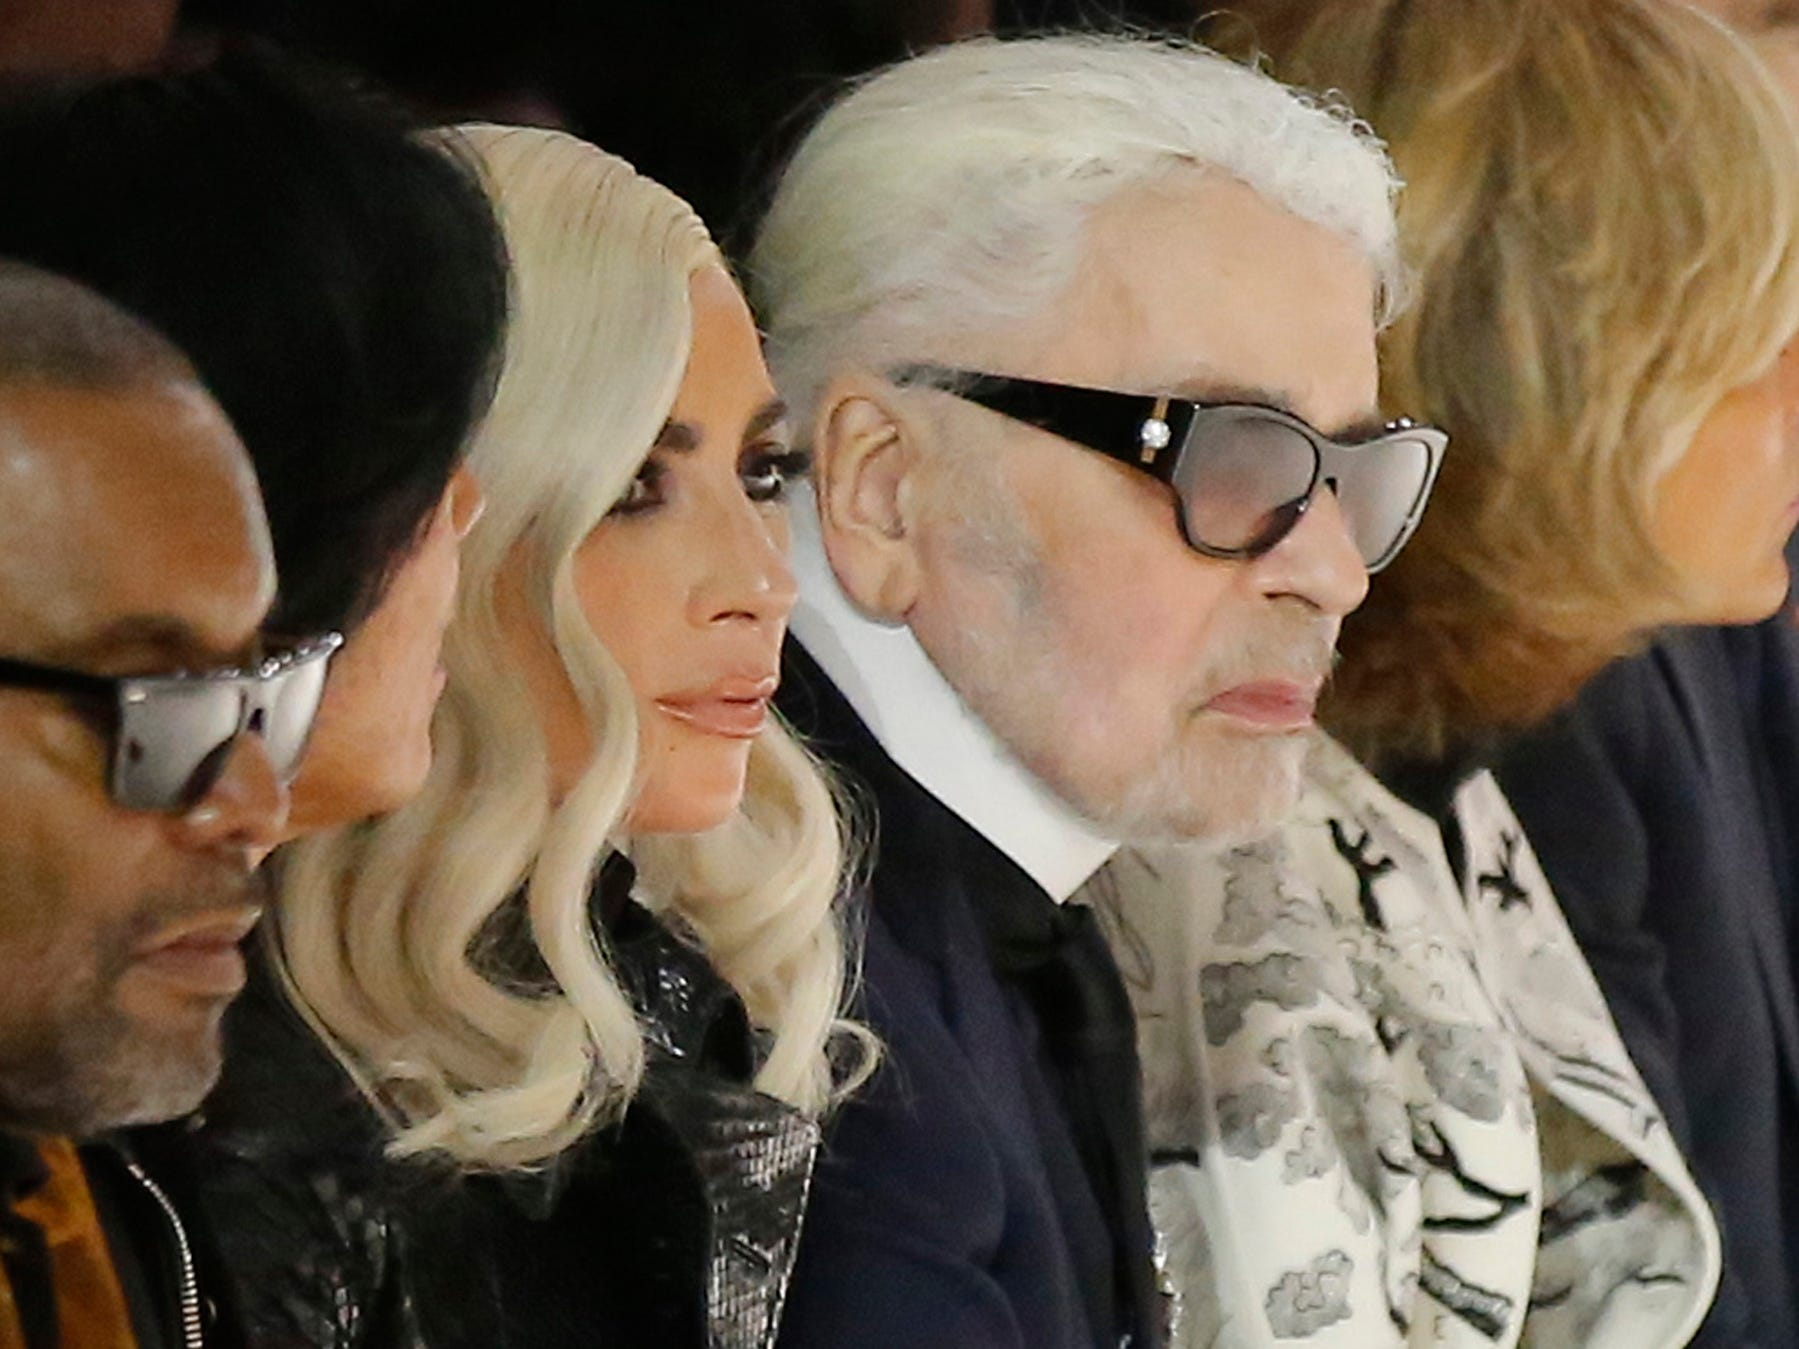 Singer Lady Gaga, centre, and designer Karl Lagerfeld, right, watch the Celine Spring/Summer 2019 ready to wear fashion collection presented in Paris, Friday, Sept. 28, 2018. (AP Photo/Michel Euler) ORG XMIT: LENT137